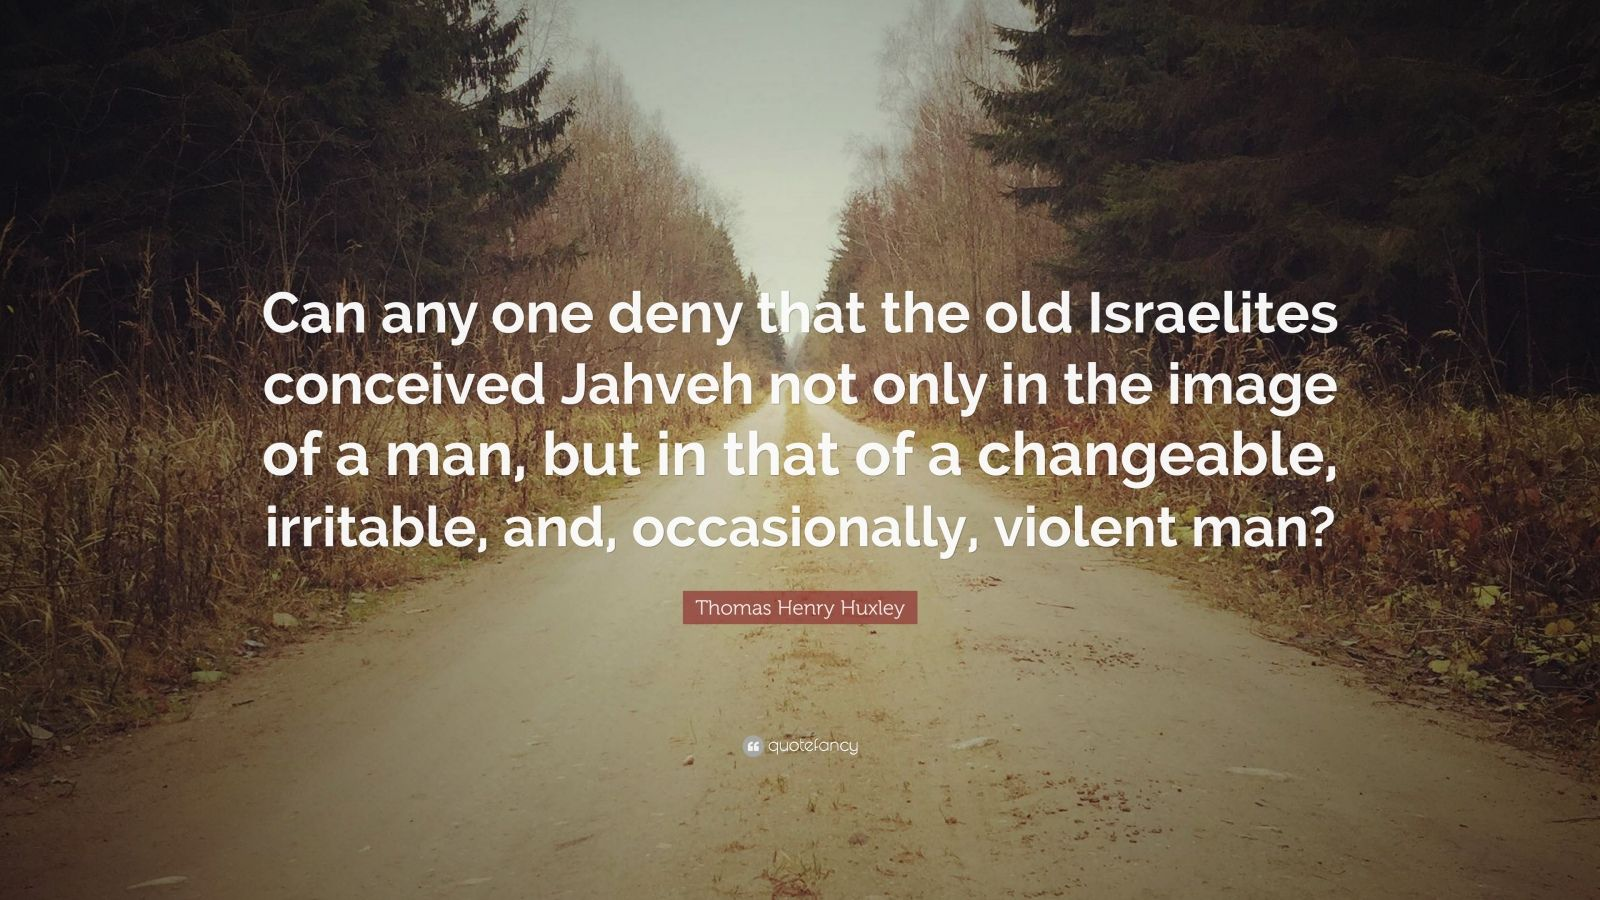 """Thomas Henry Huxley Quote: """"Can any one deny that the old Israelites conceived Jahveh not only in the image of a man, but in that of a changeable, irritable, and, occasionally, violent man?"""""""